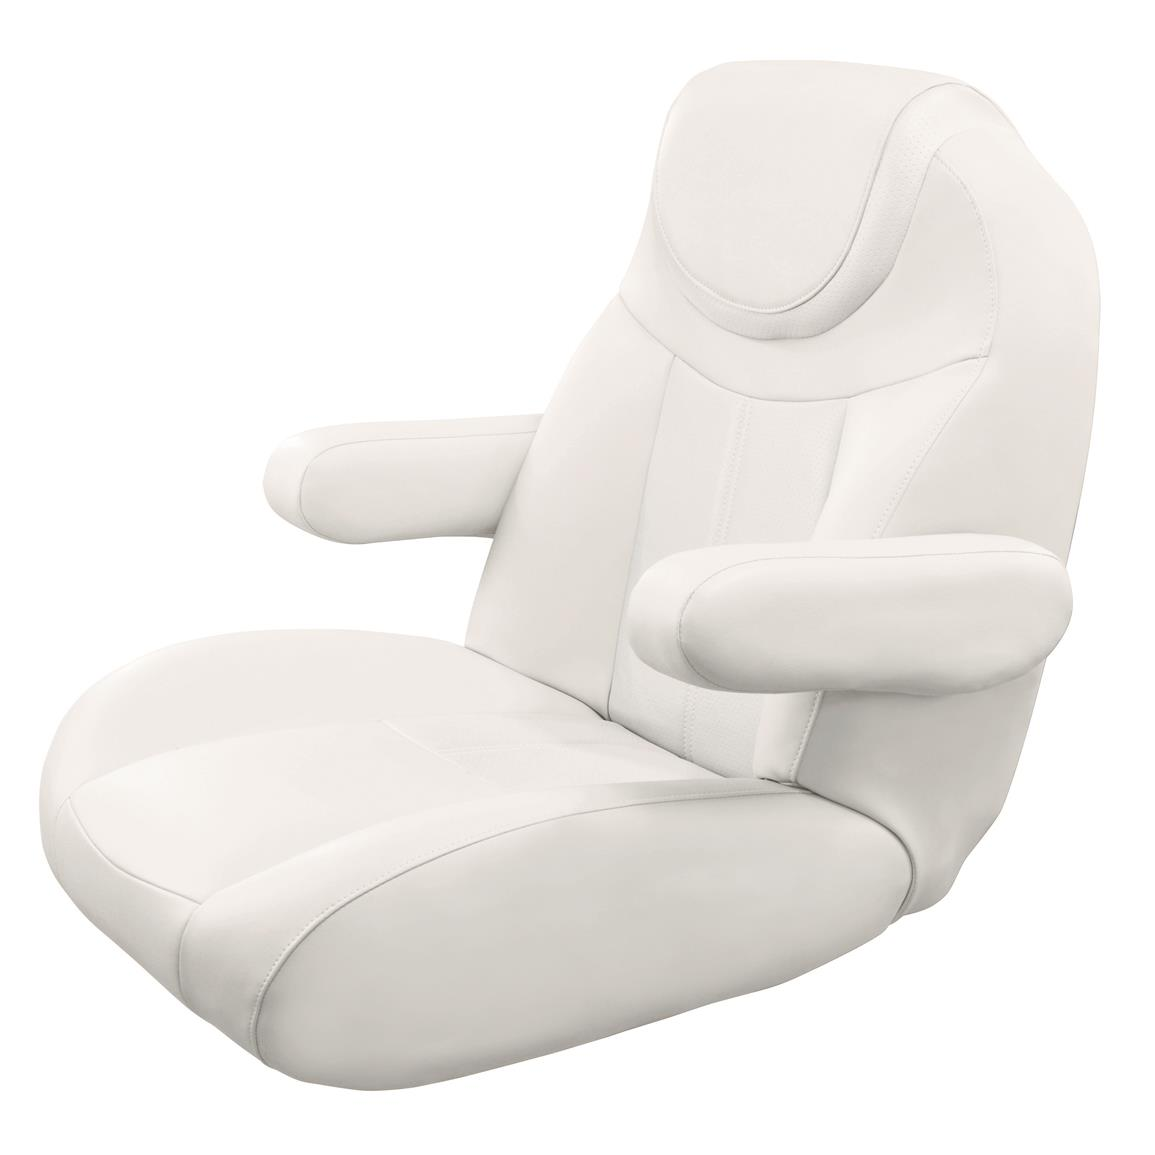 Wise Tellico Mid Back Recliner Pontoon Bucket Seat, Color C - Cuddy Brite White